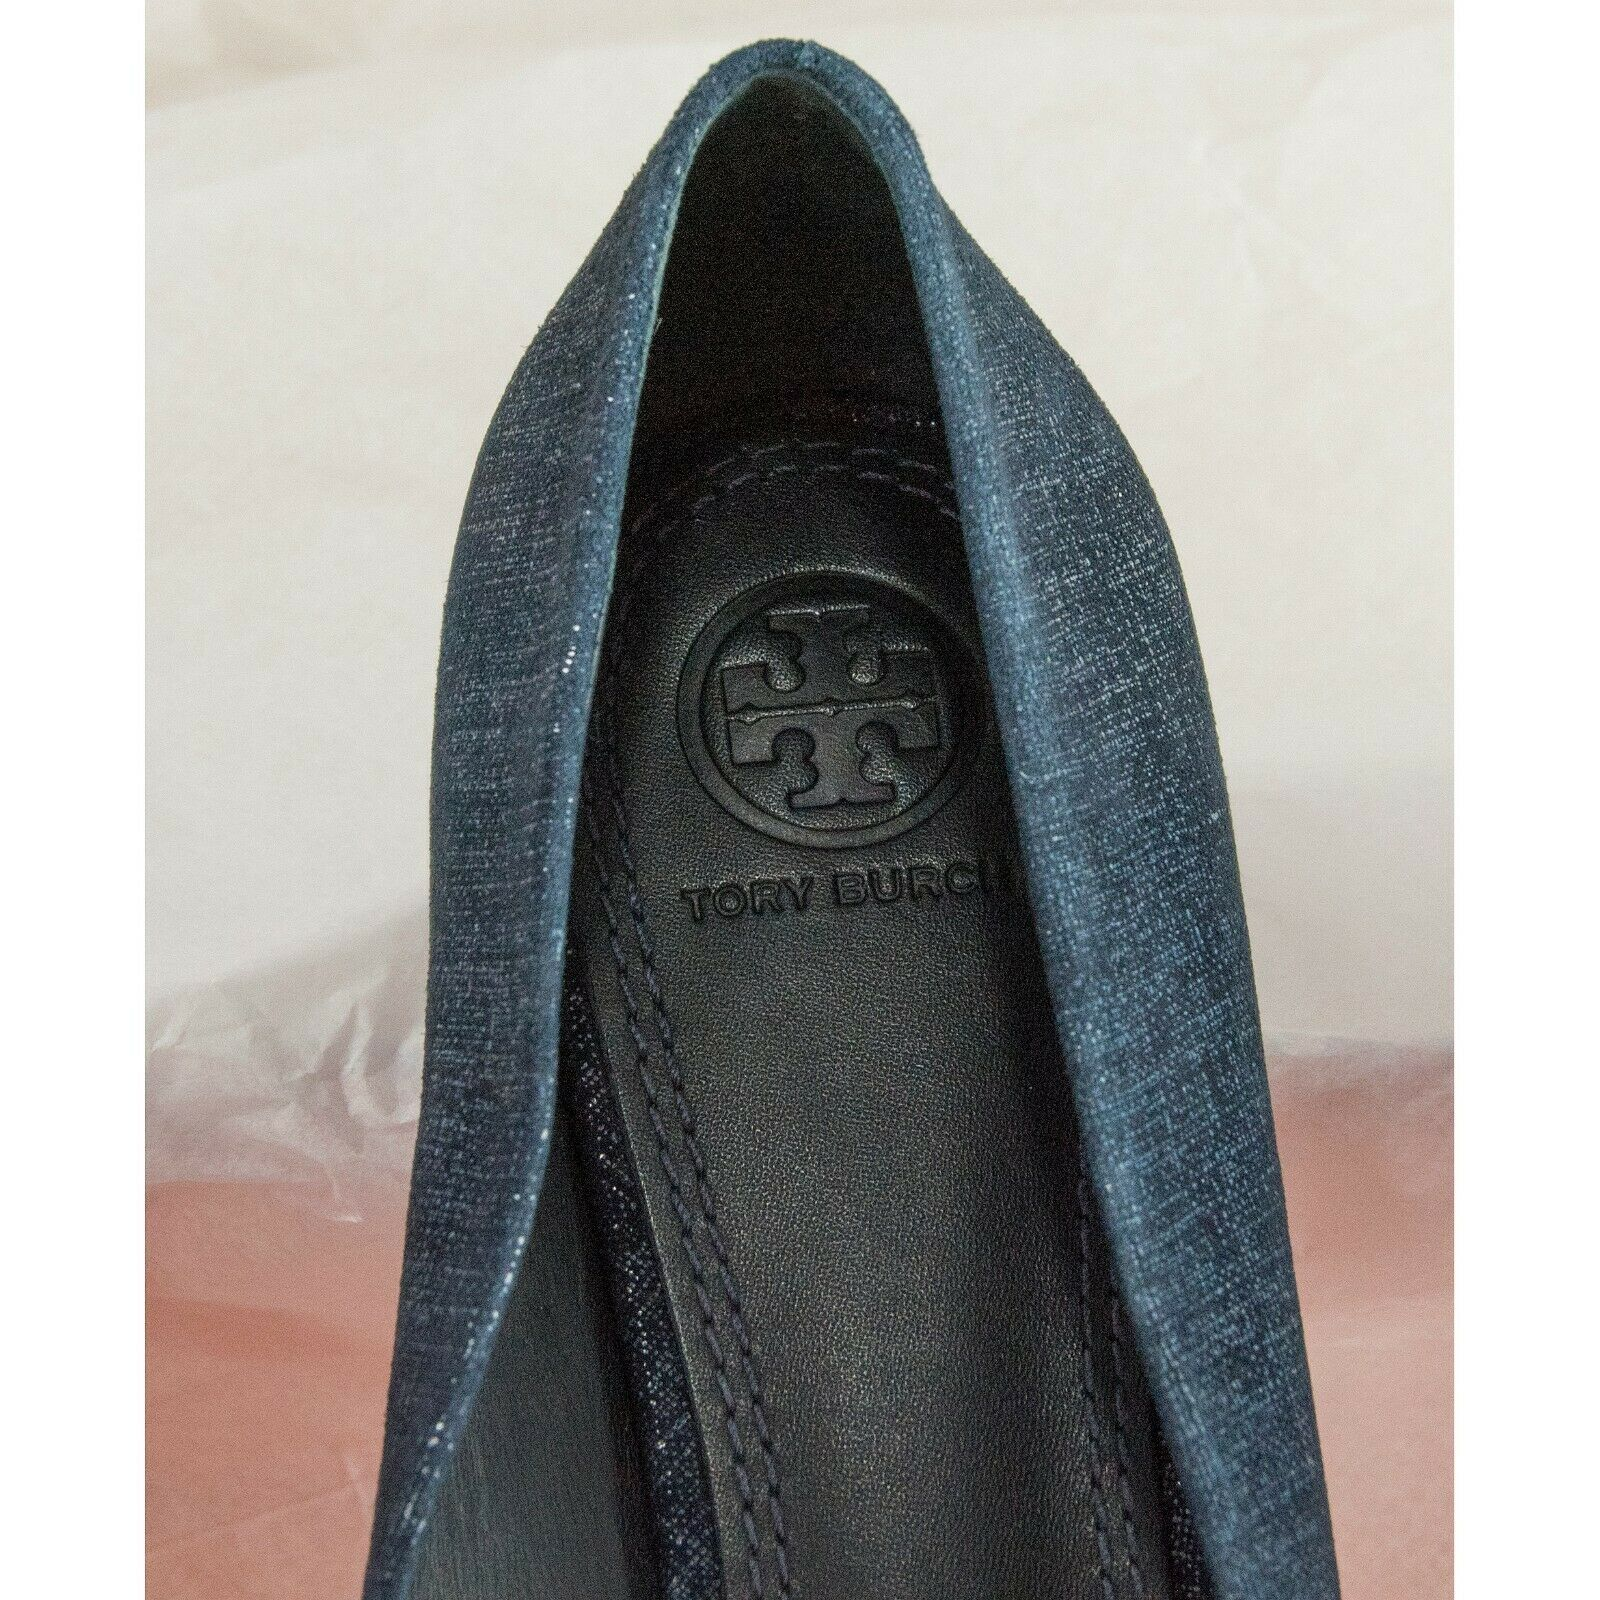 Tory Burch Denim Look Navy Suede Leather Rosalind Pointed Toe Bow Ballet Flat 9